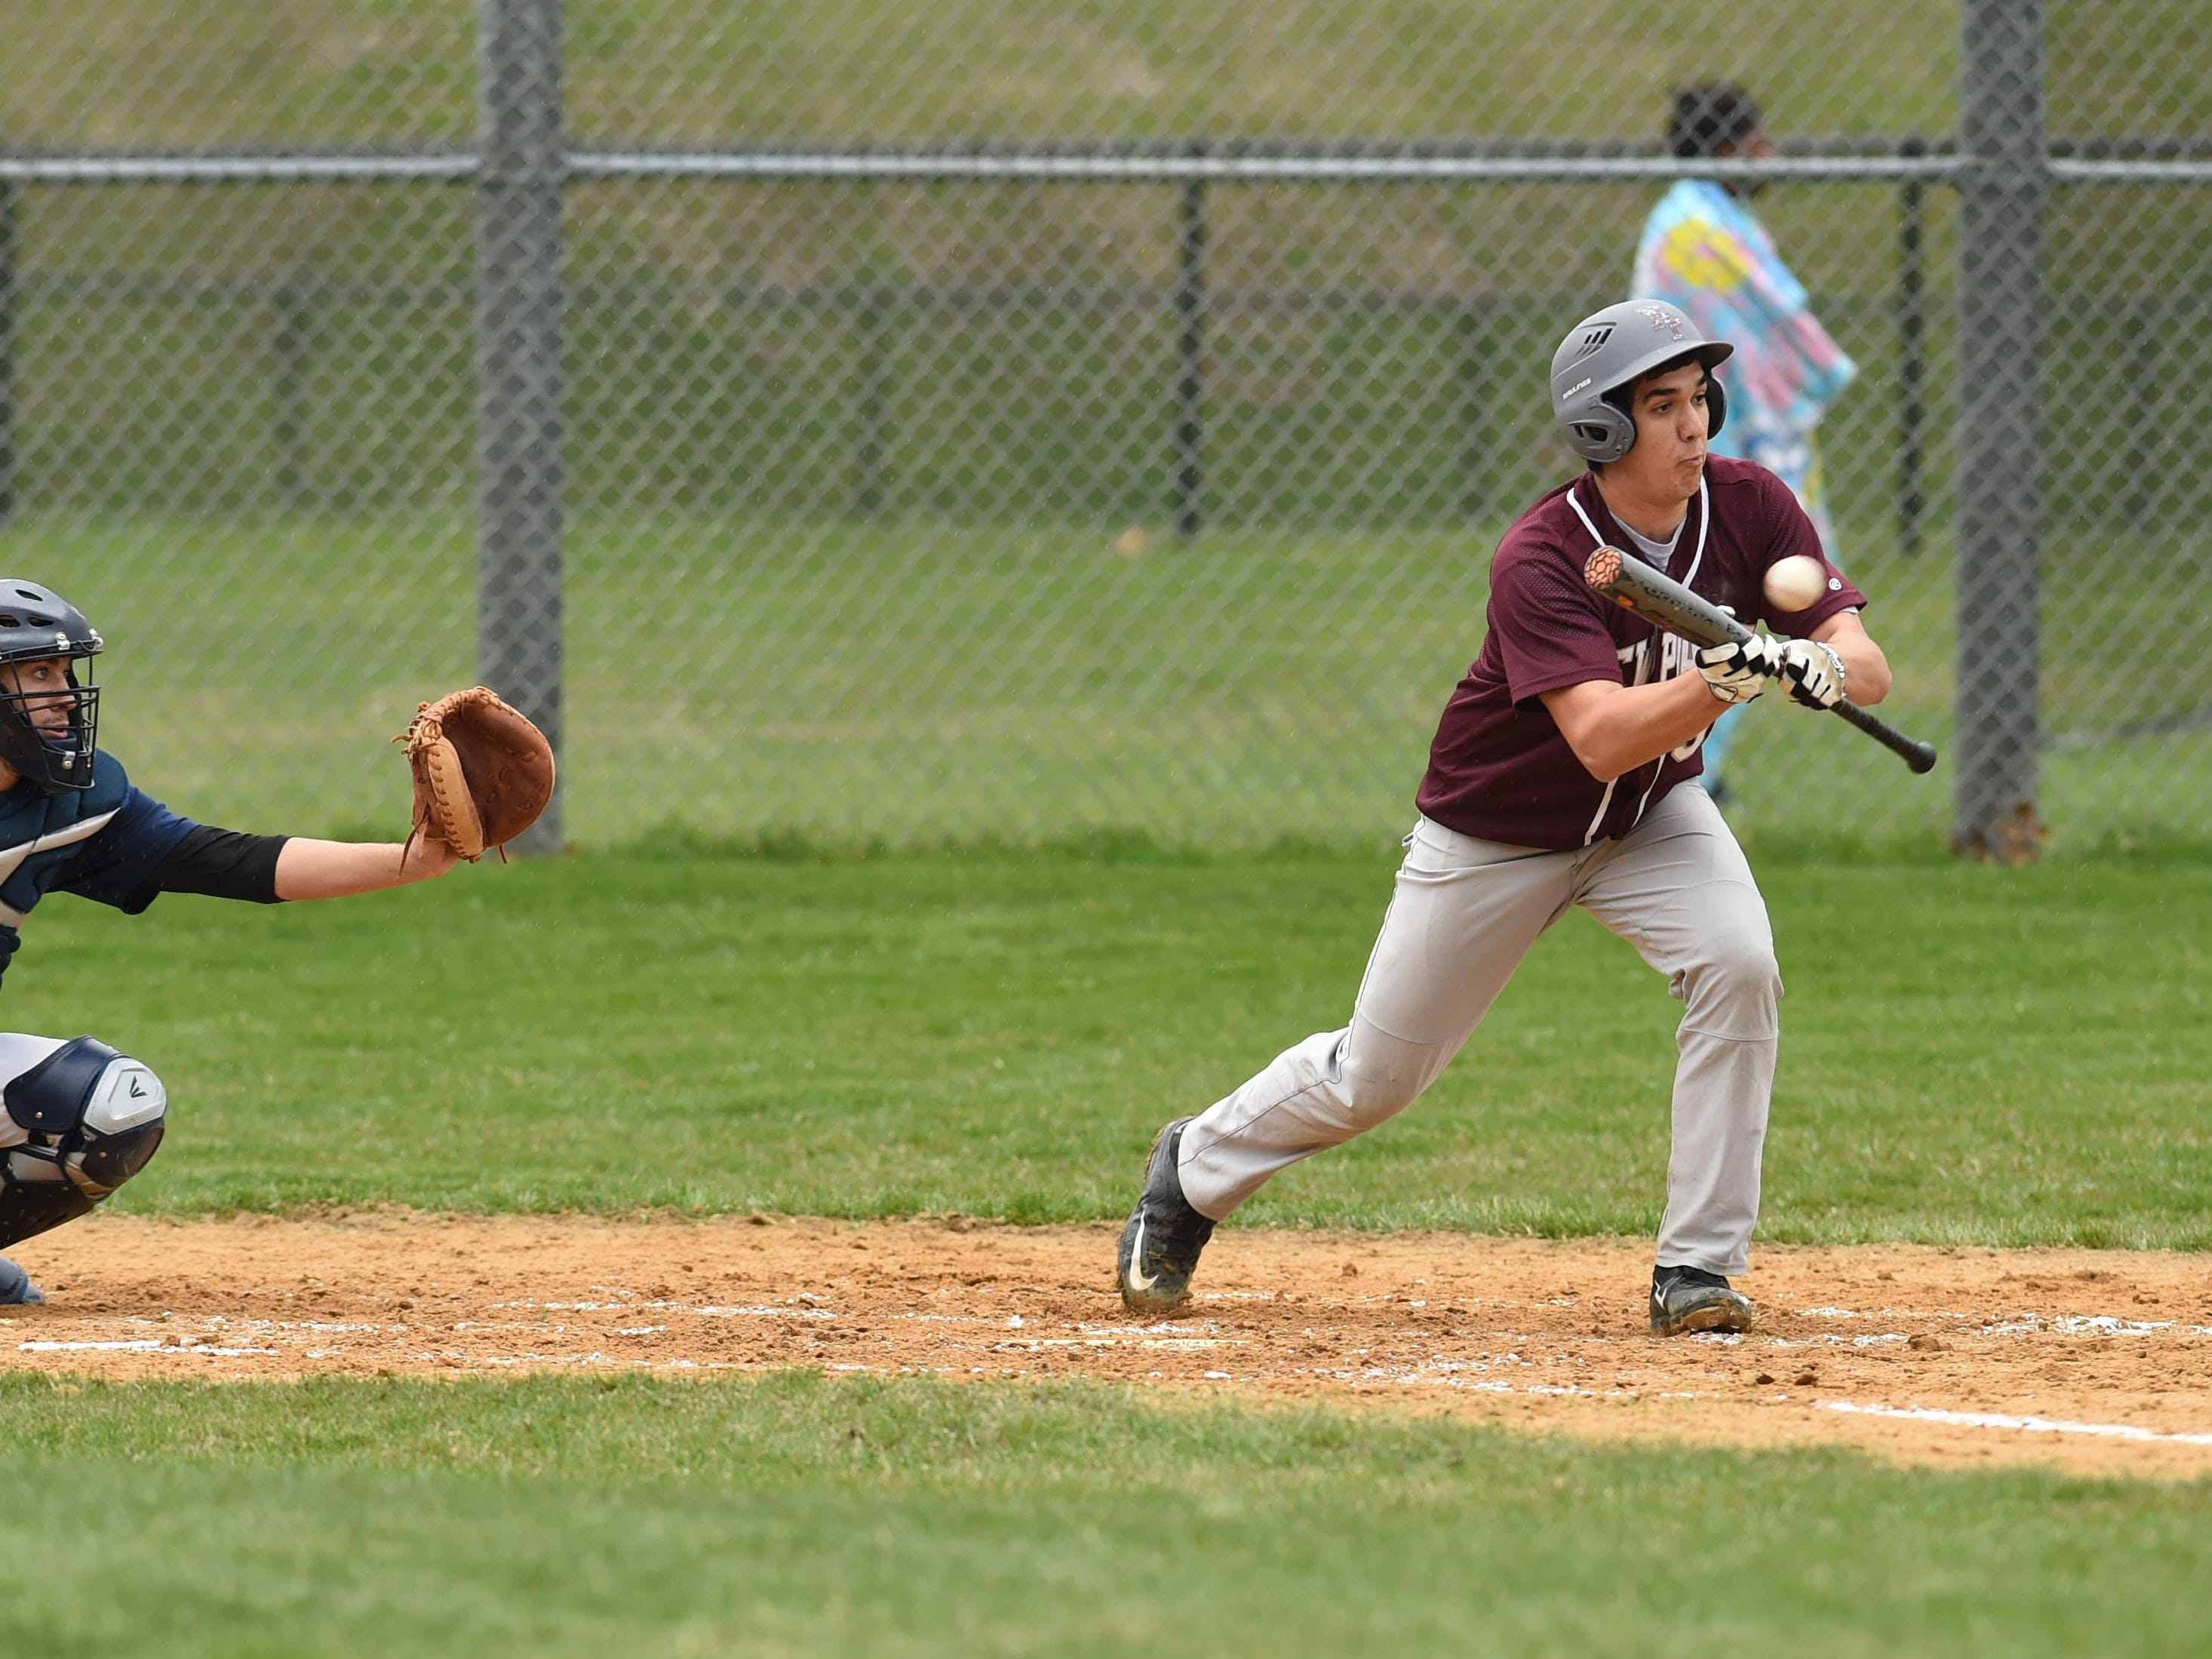 New Paltz's Tyler Black hits a bunt during Monday's game against Highland.